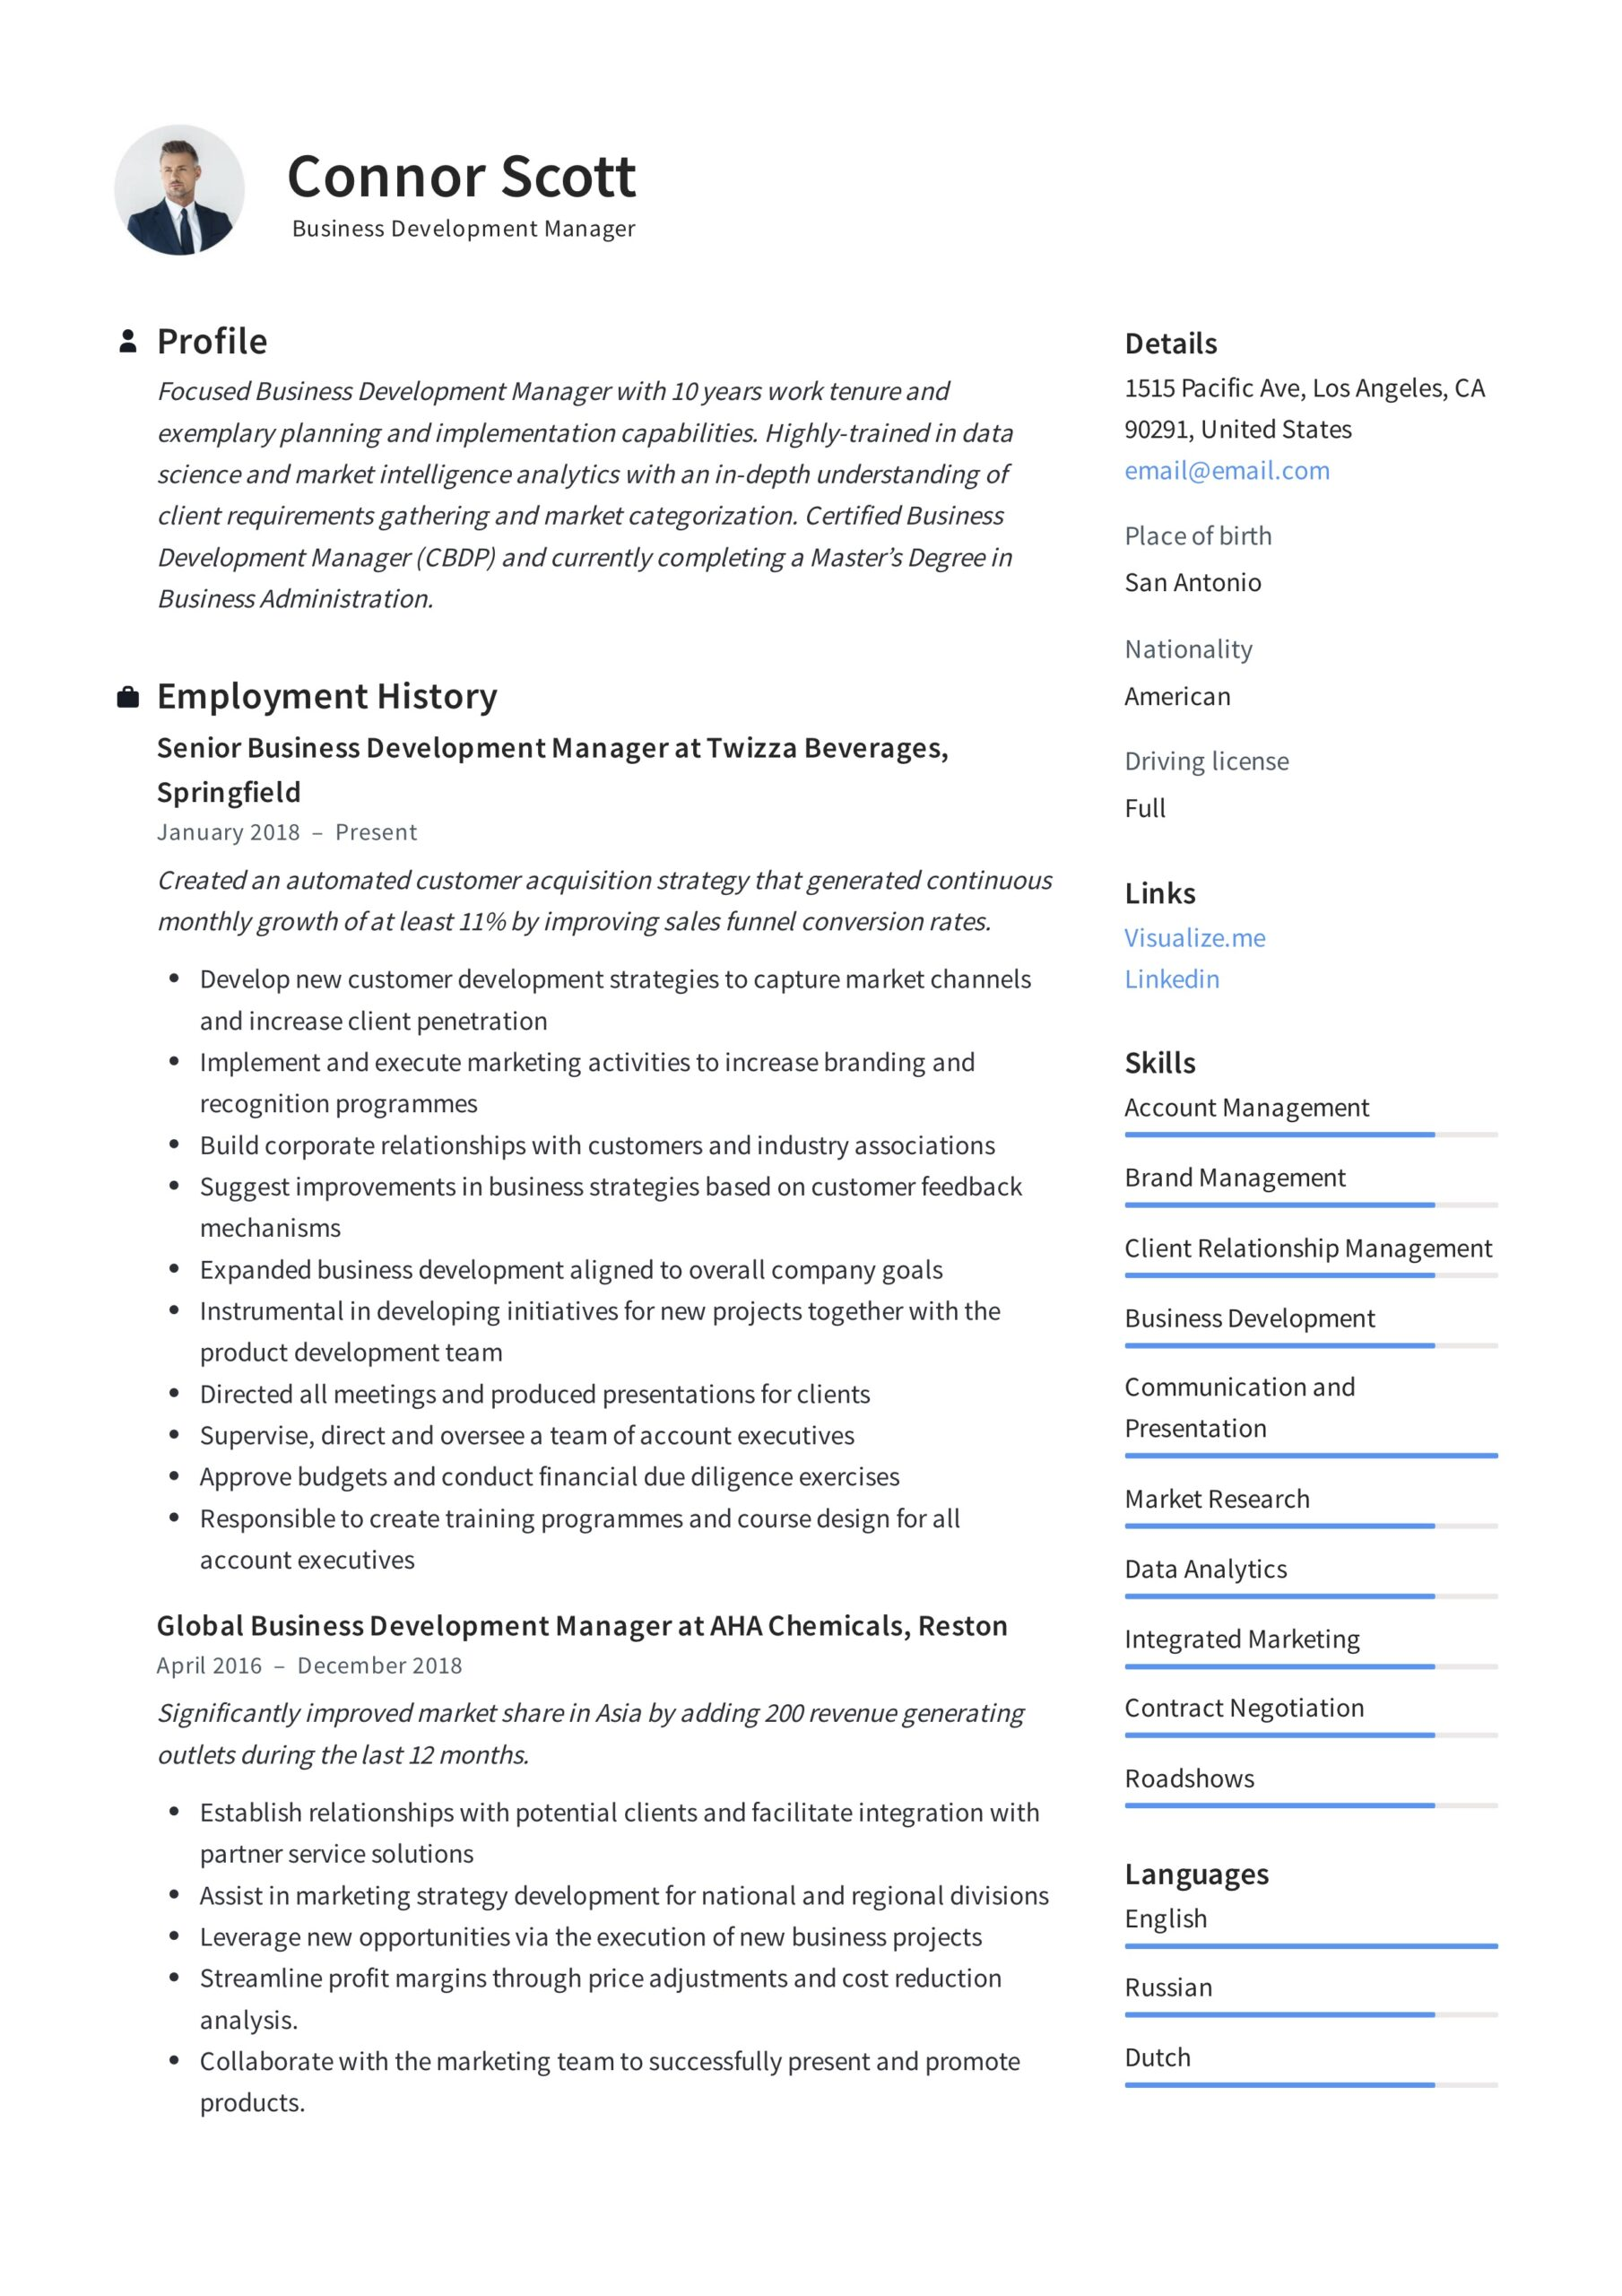 business development manager resume guide templates pdf sending email career summary Resume Business Development Manager Resume